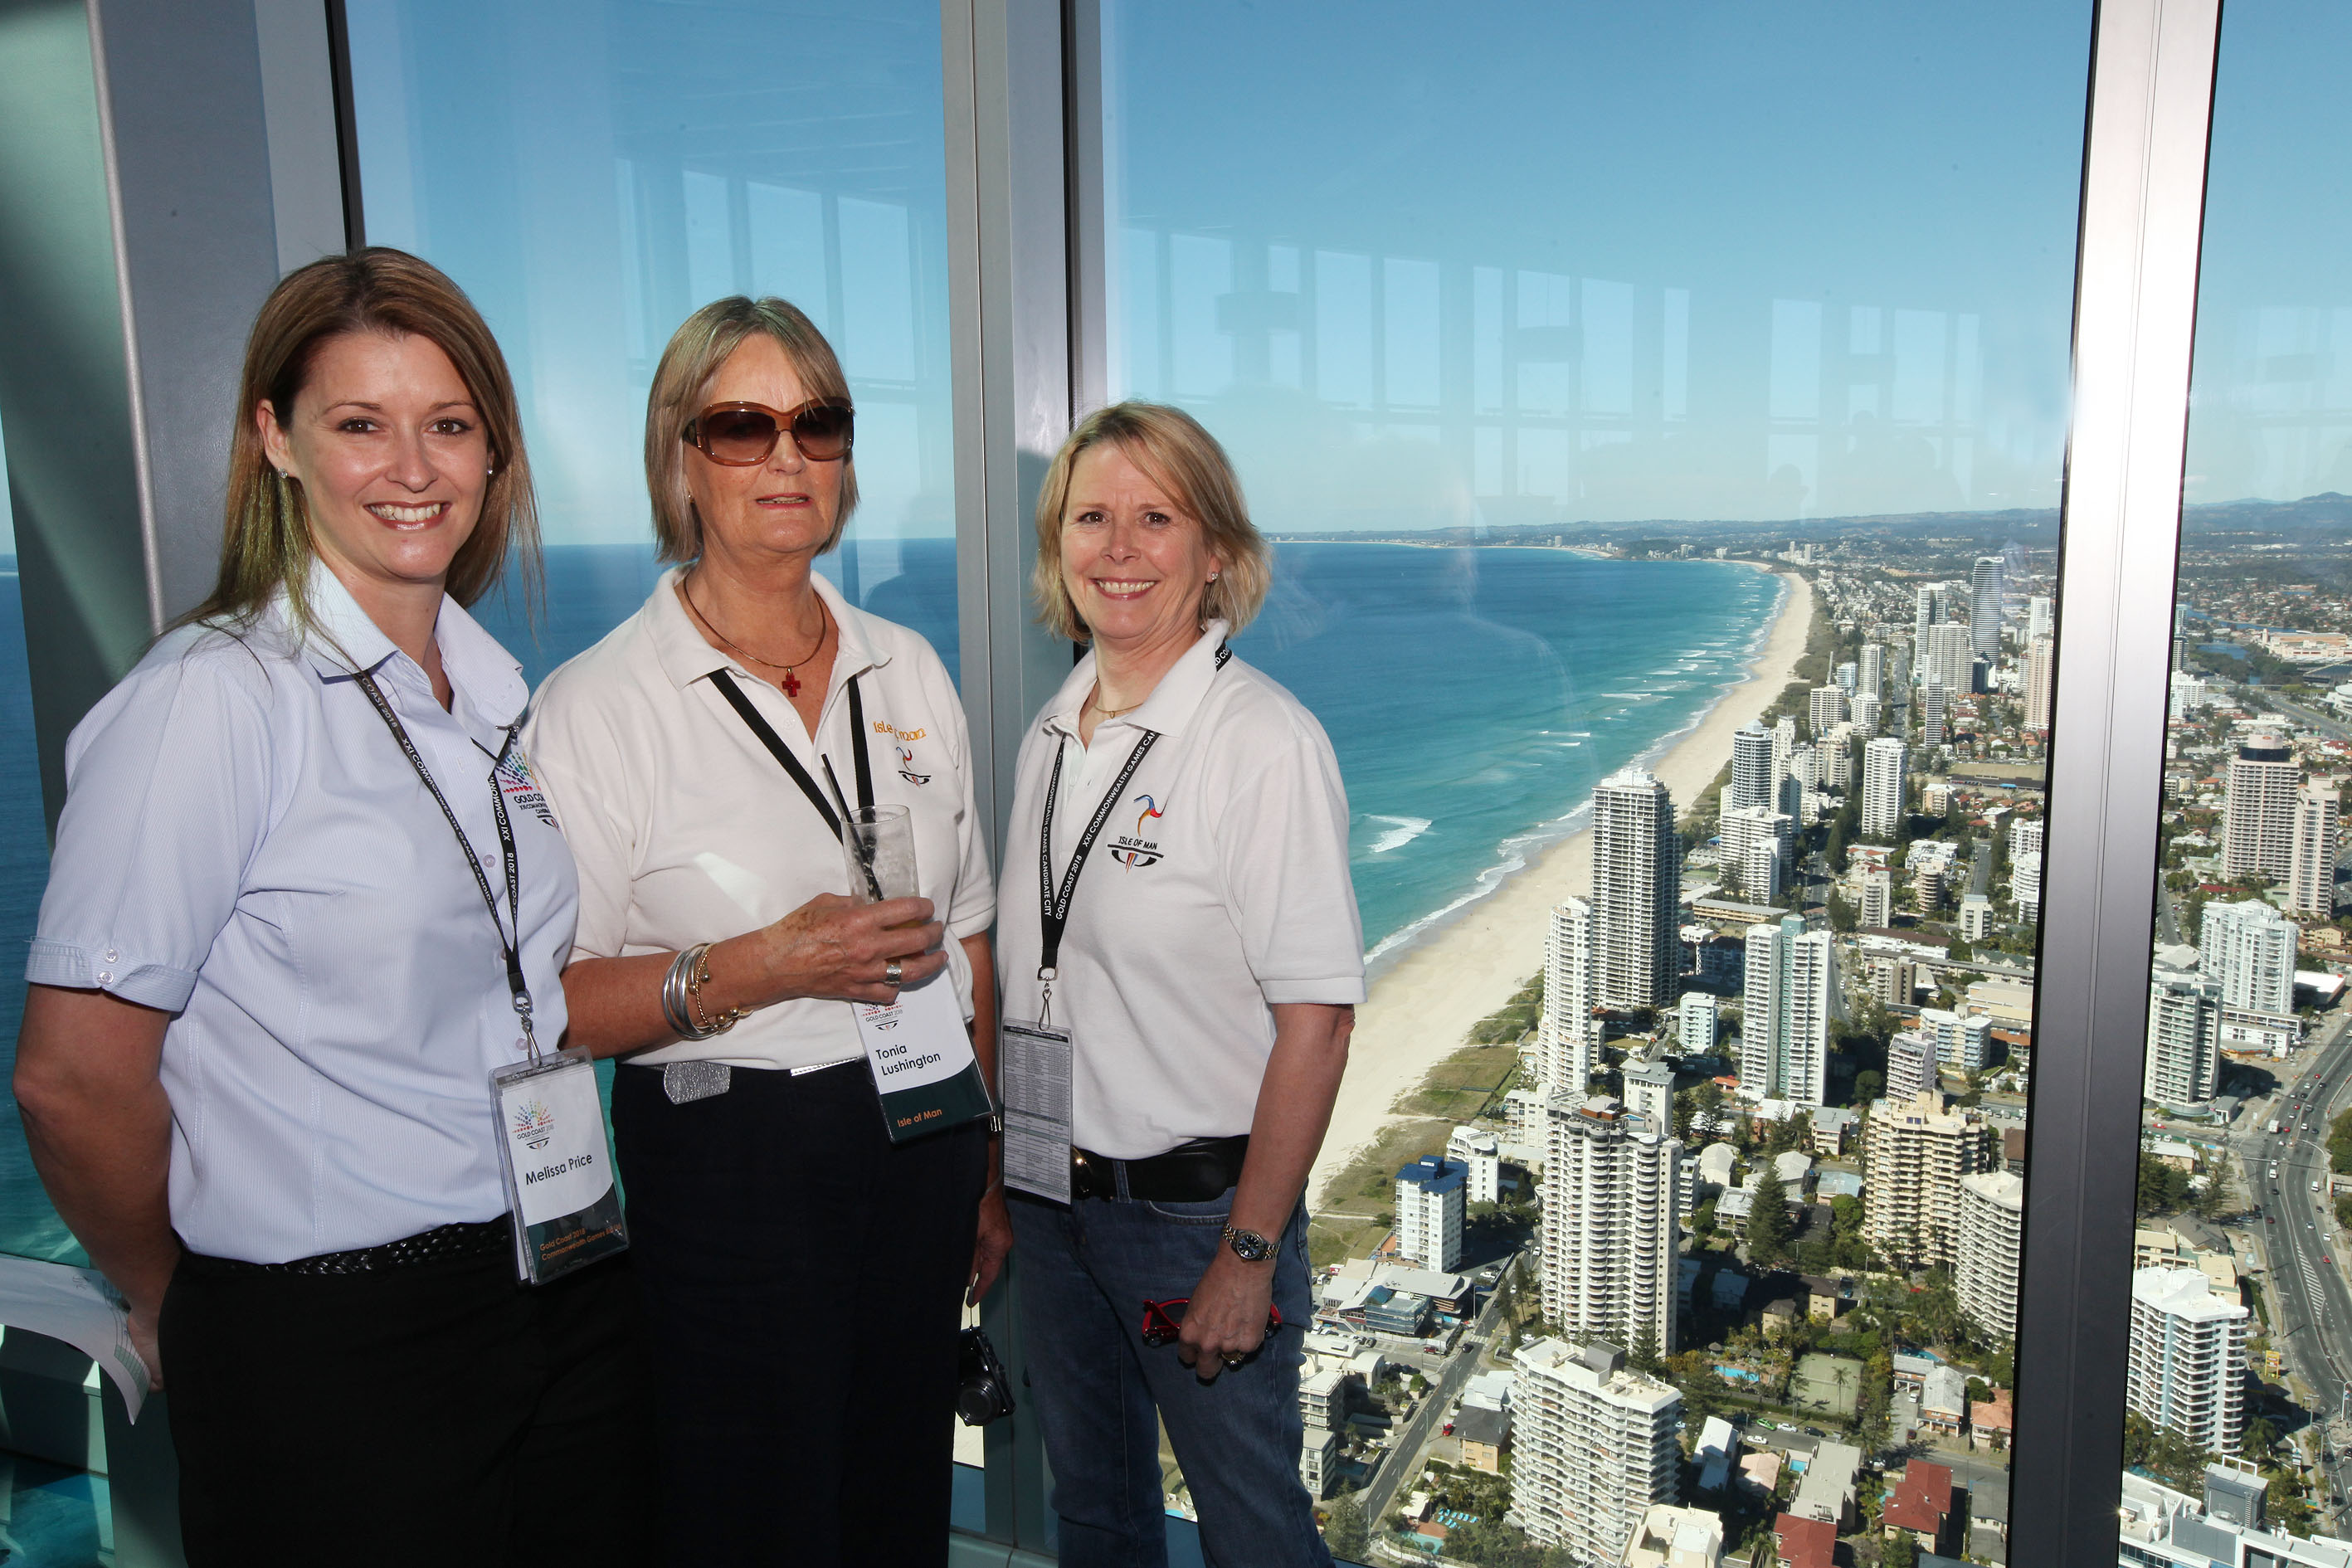 Commonwealth_Games_delegation_Gold_Coast_2018_with_Mellissa_Price_and_Isle_of_Man